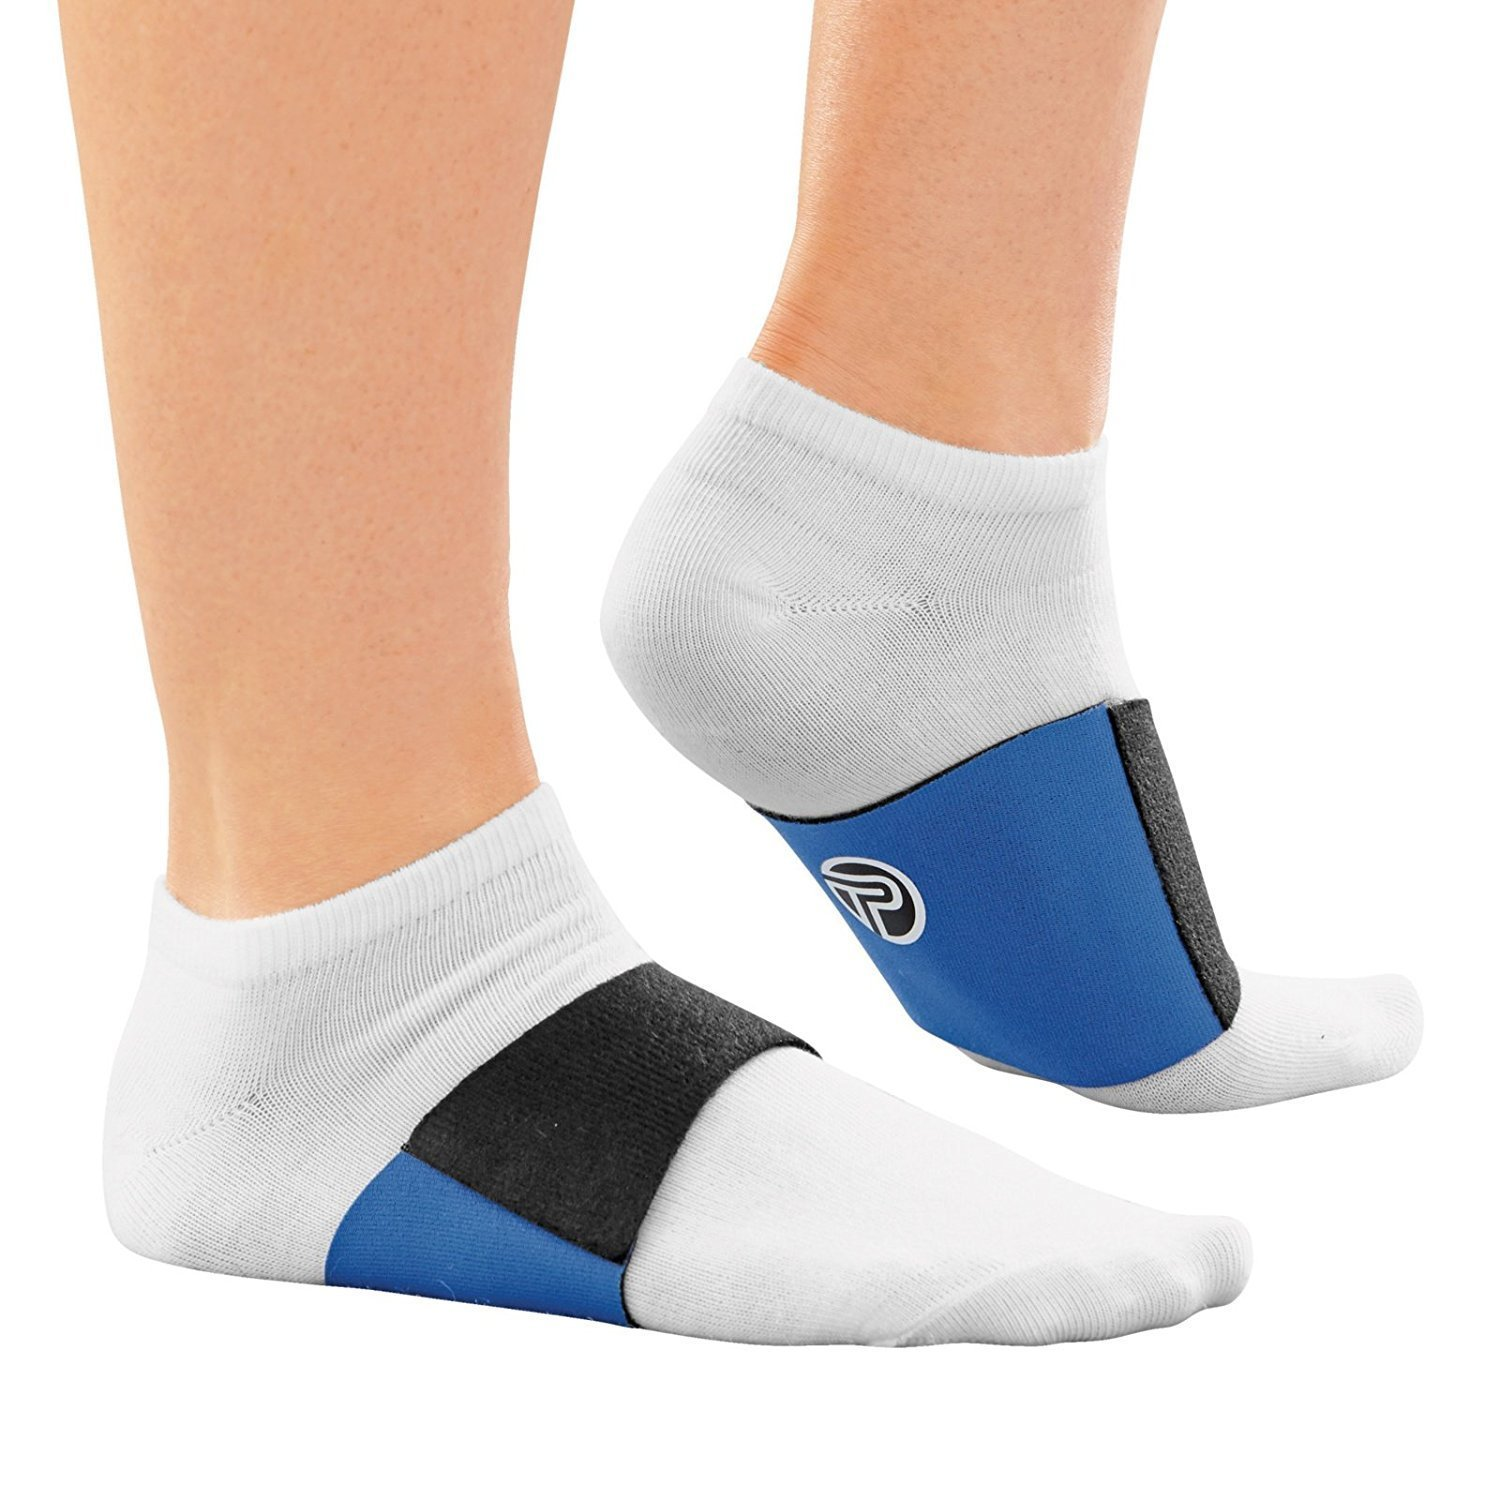 Physical Therapy Aids 081011626 Pro-TEC Arch Support L